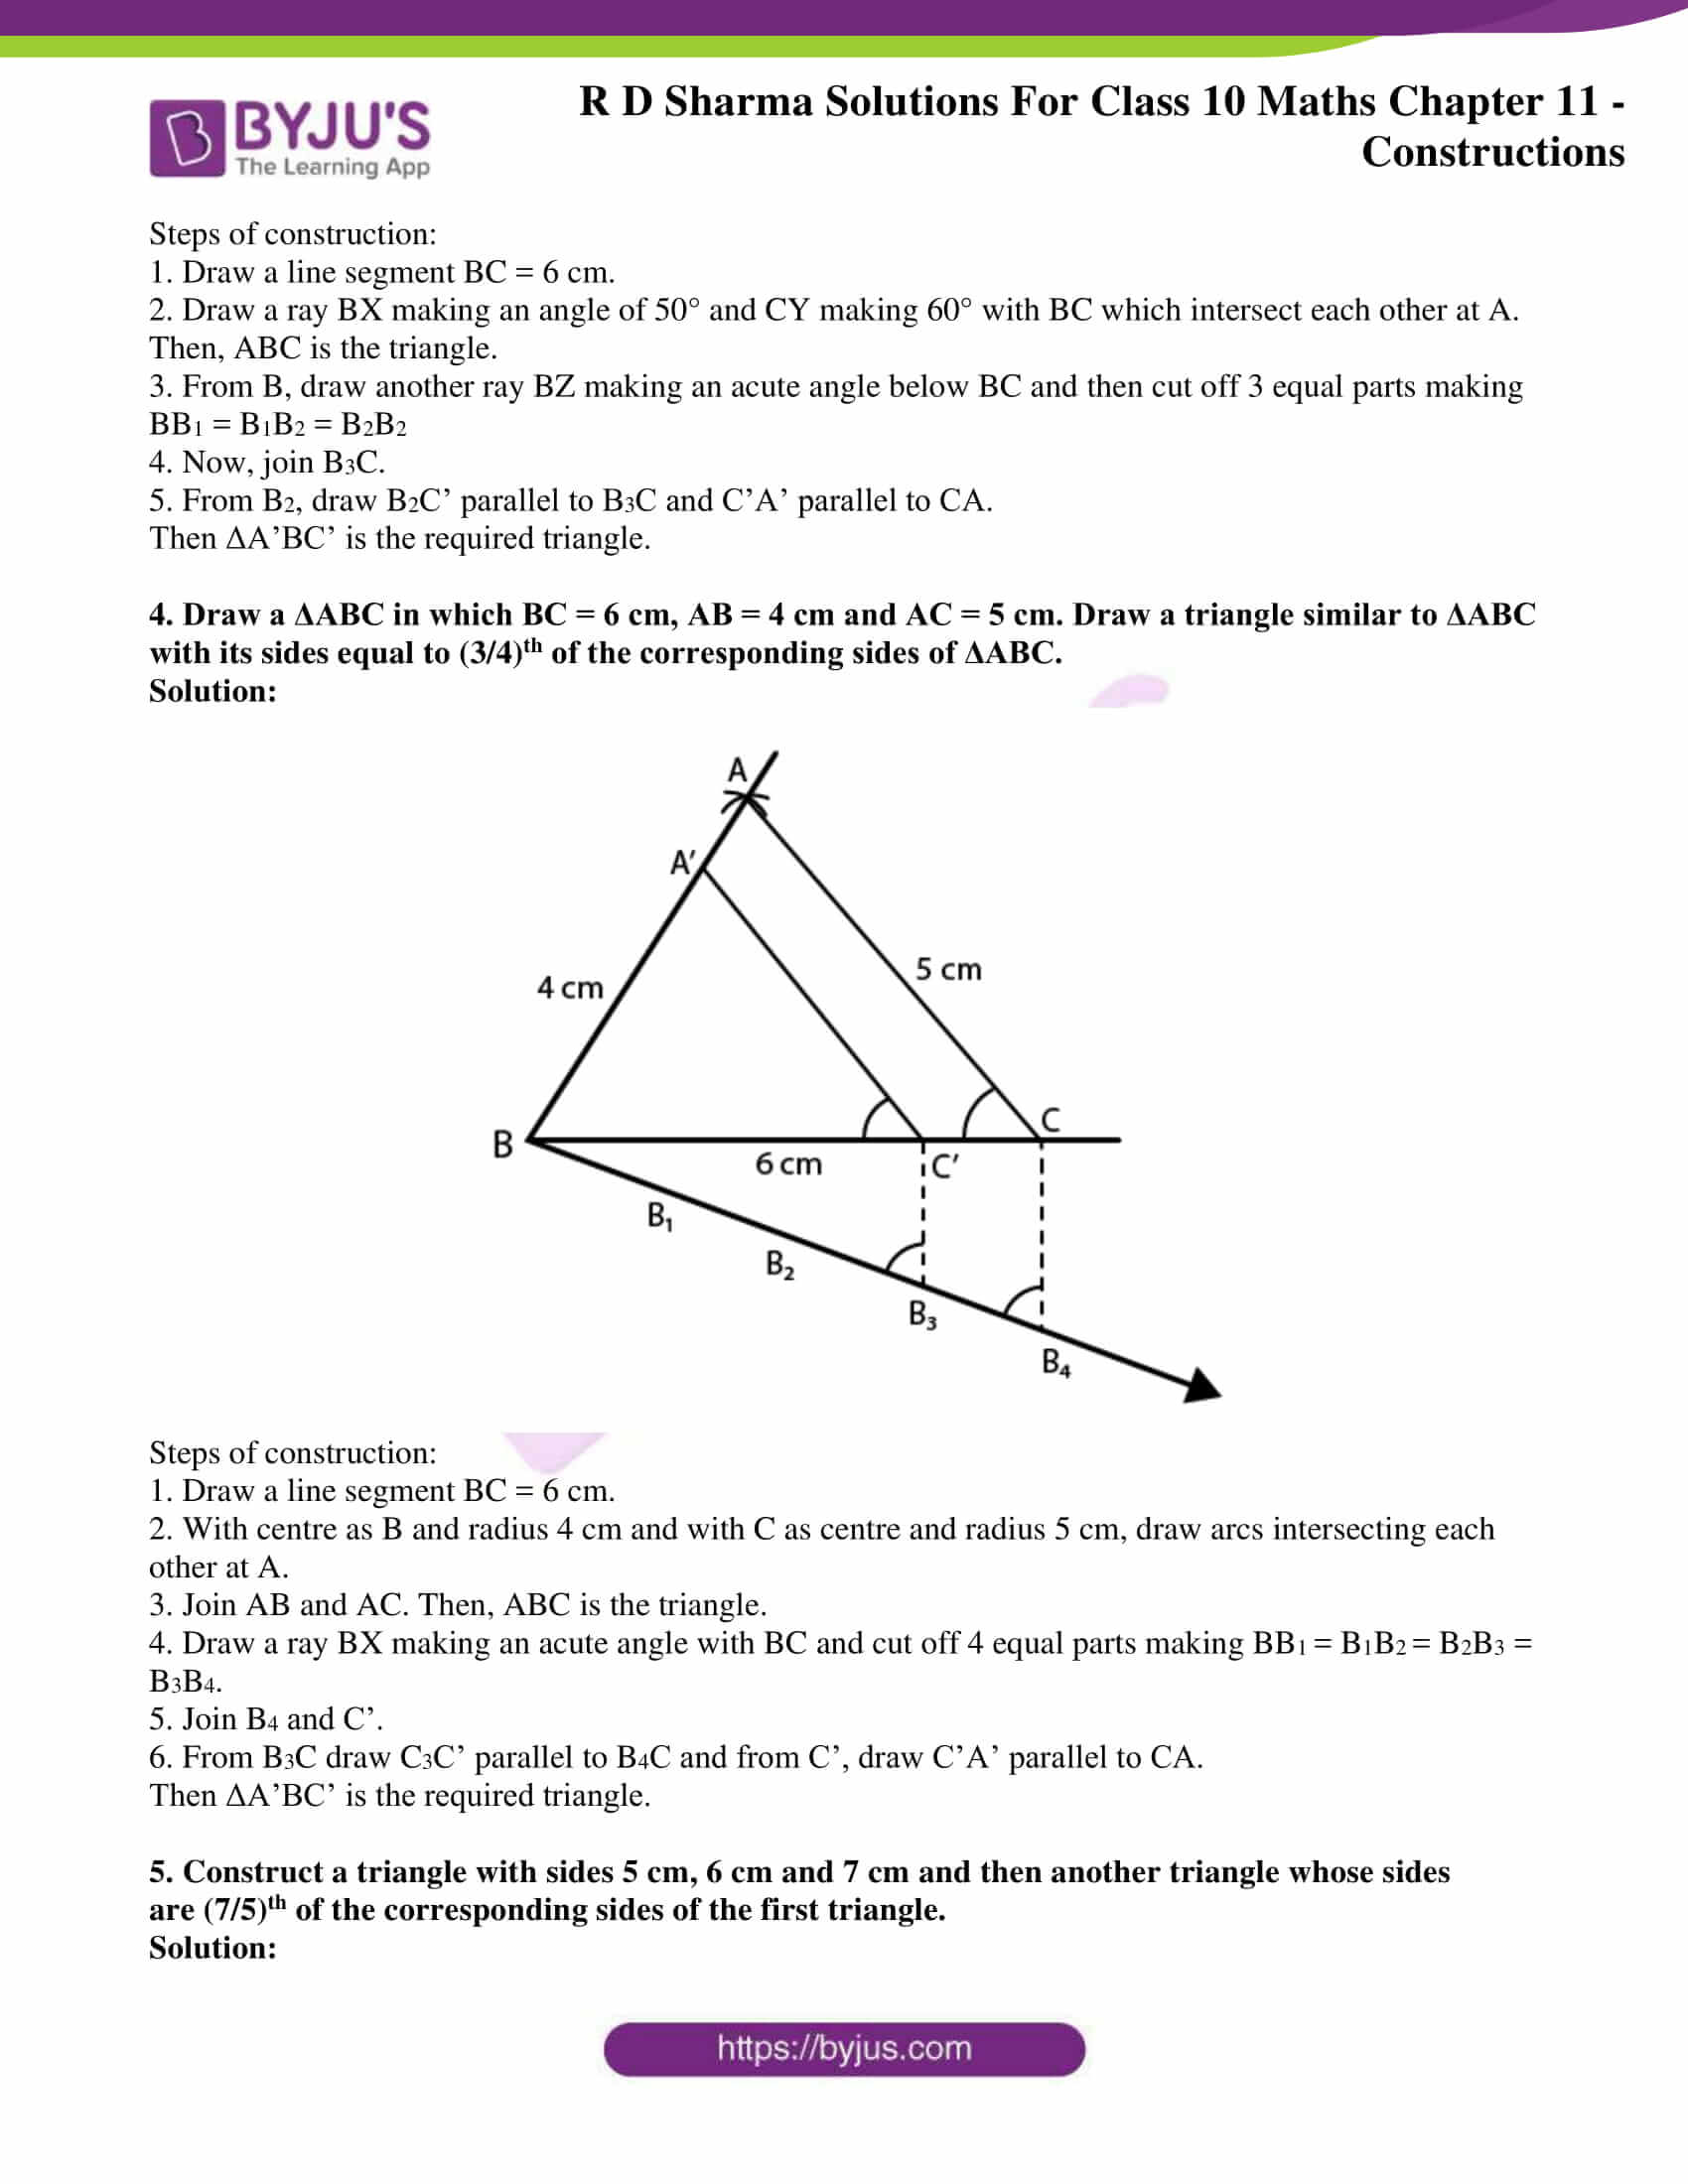 rd sharma solutions for class 10 chapter 11 ex 2